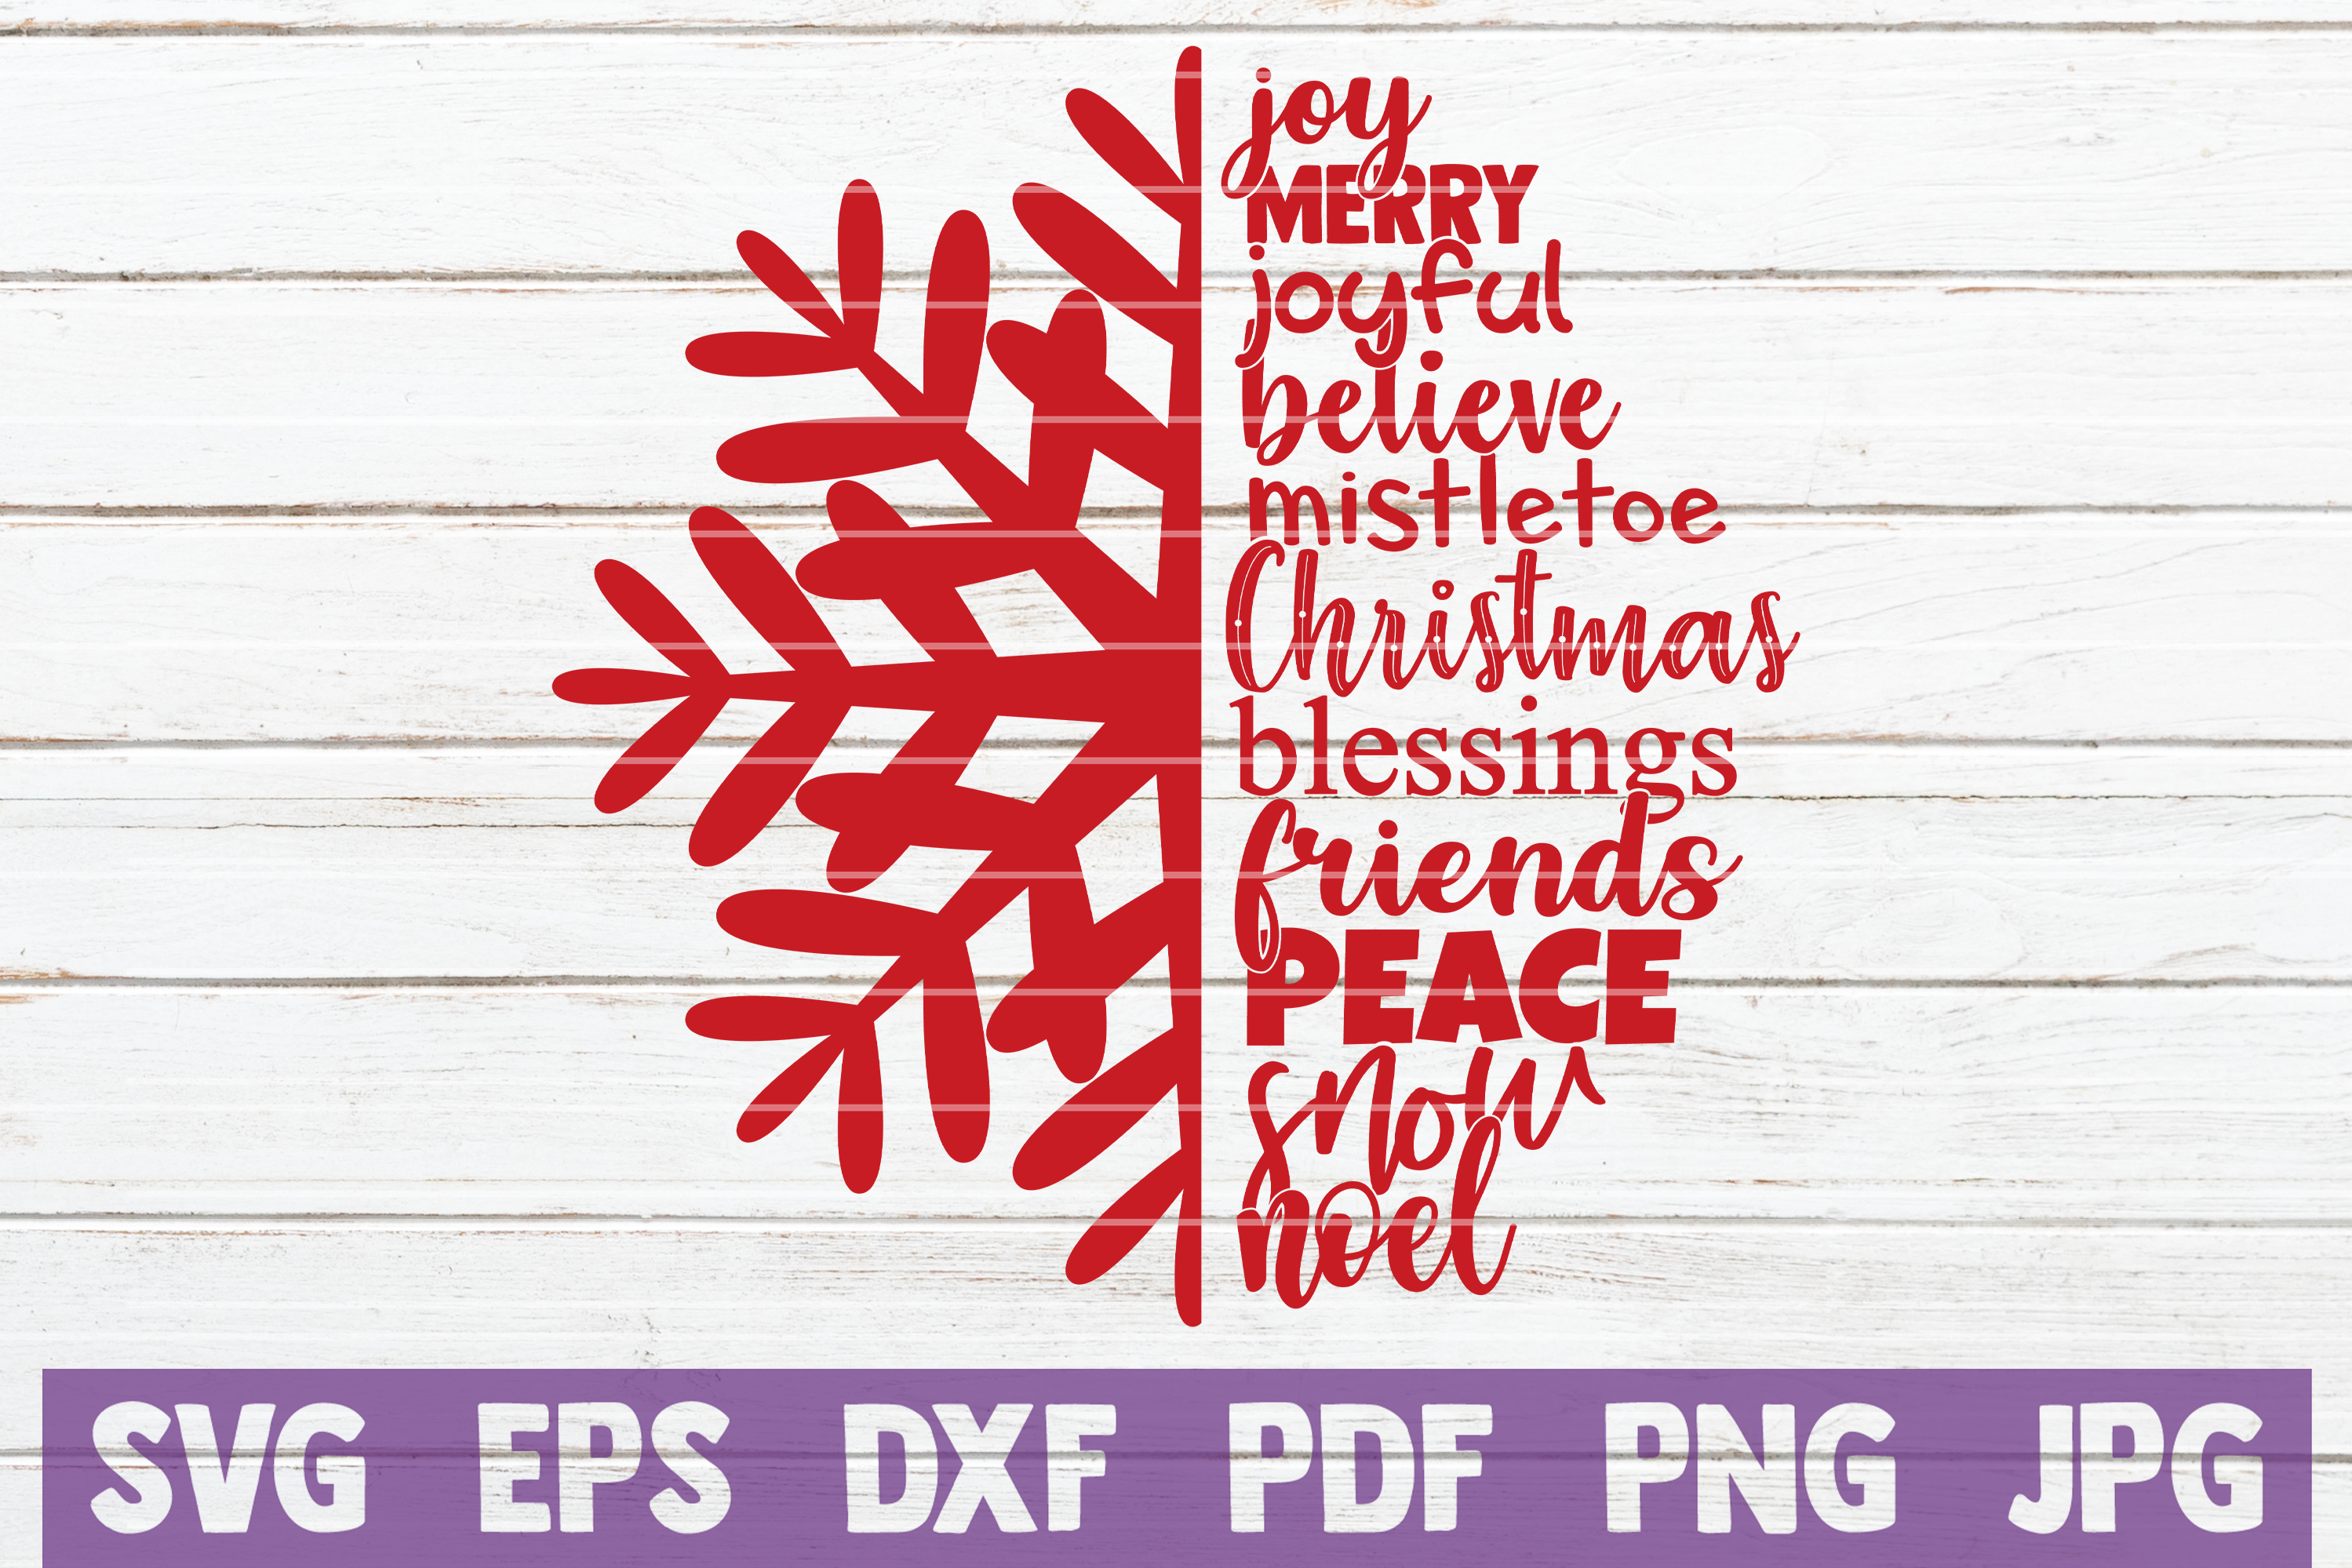 Download Free Christmas Snowflake Joy Merry Joyful Believe Christmas Blessings Friends Peace Snow Noel Graphic By Mintymarshmallows Creative Fabrica SVG Cut Files